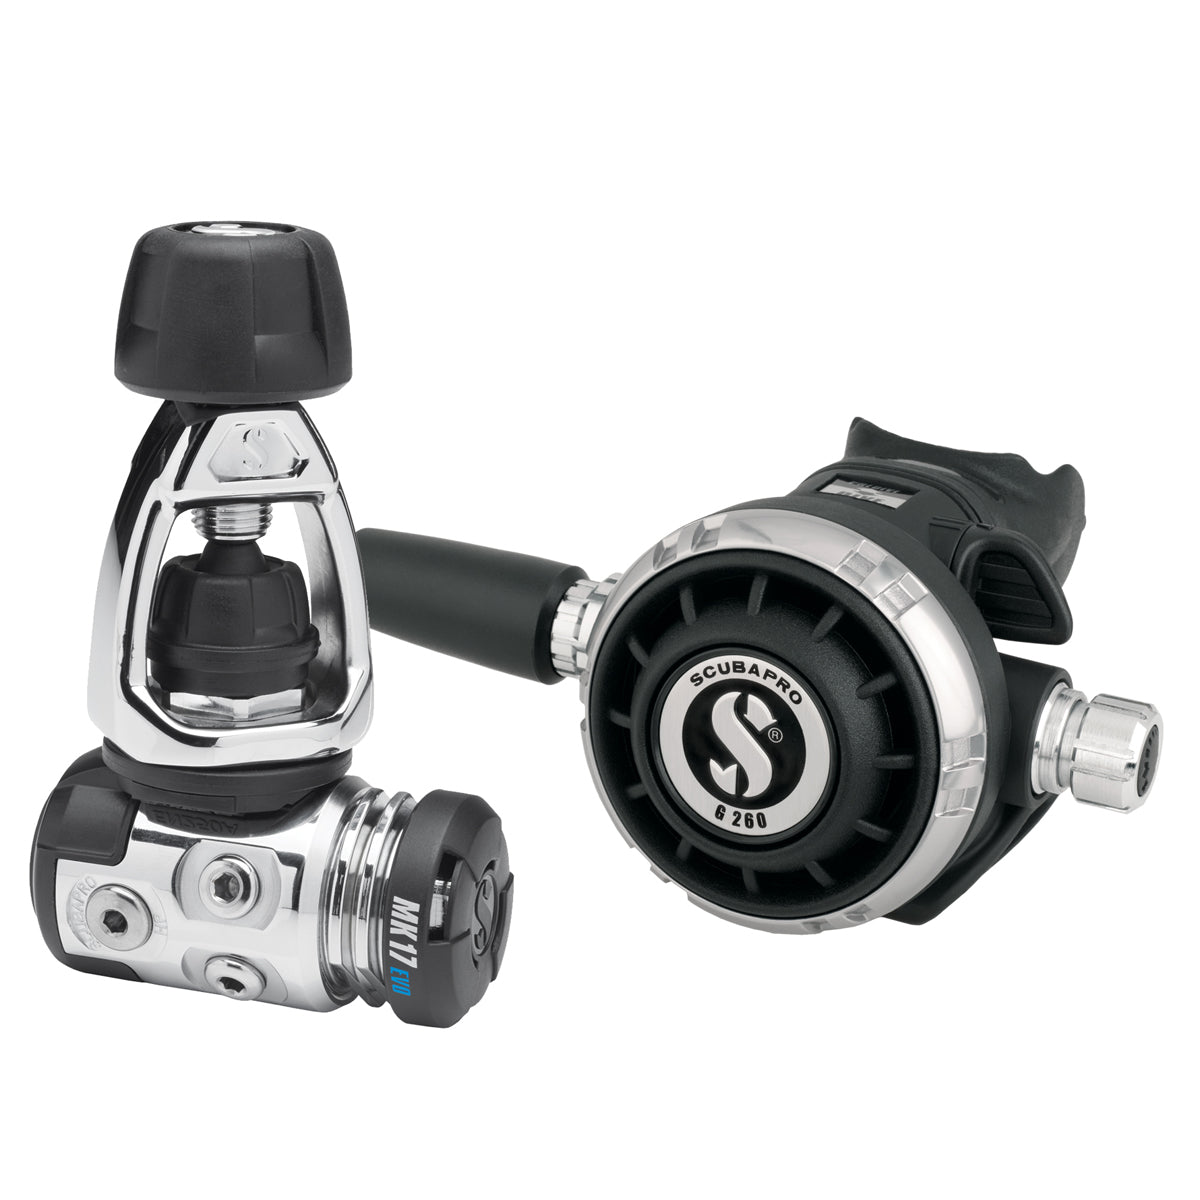 MK17 EVO/G260 DIVE REGULATOR SYSTEM, INT